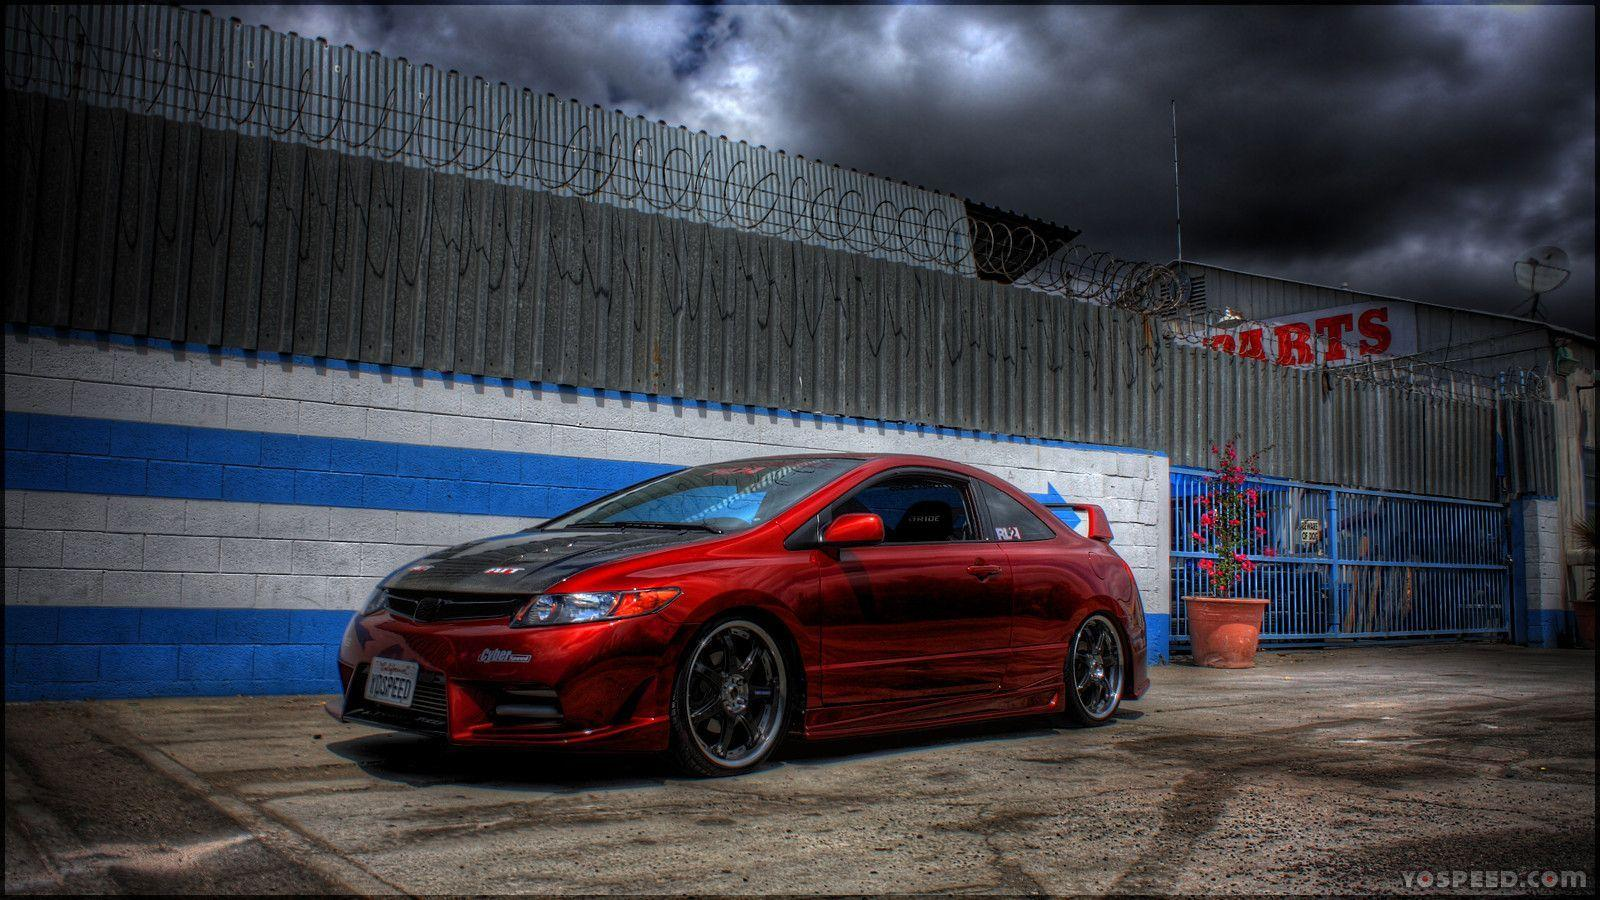 honda civic si wallpapers wallpaper cave. Black Bedroom Furniture Sets. Home Design Ideas